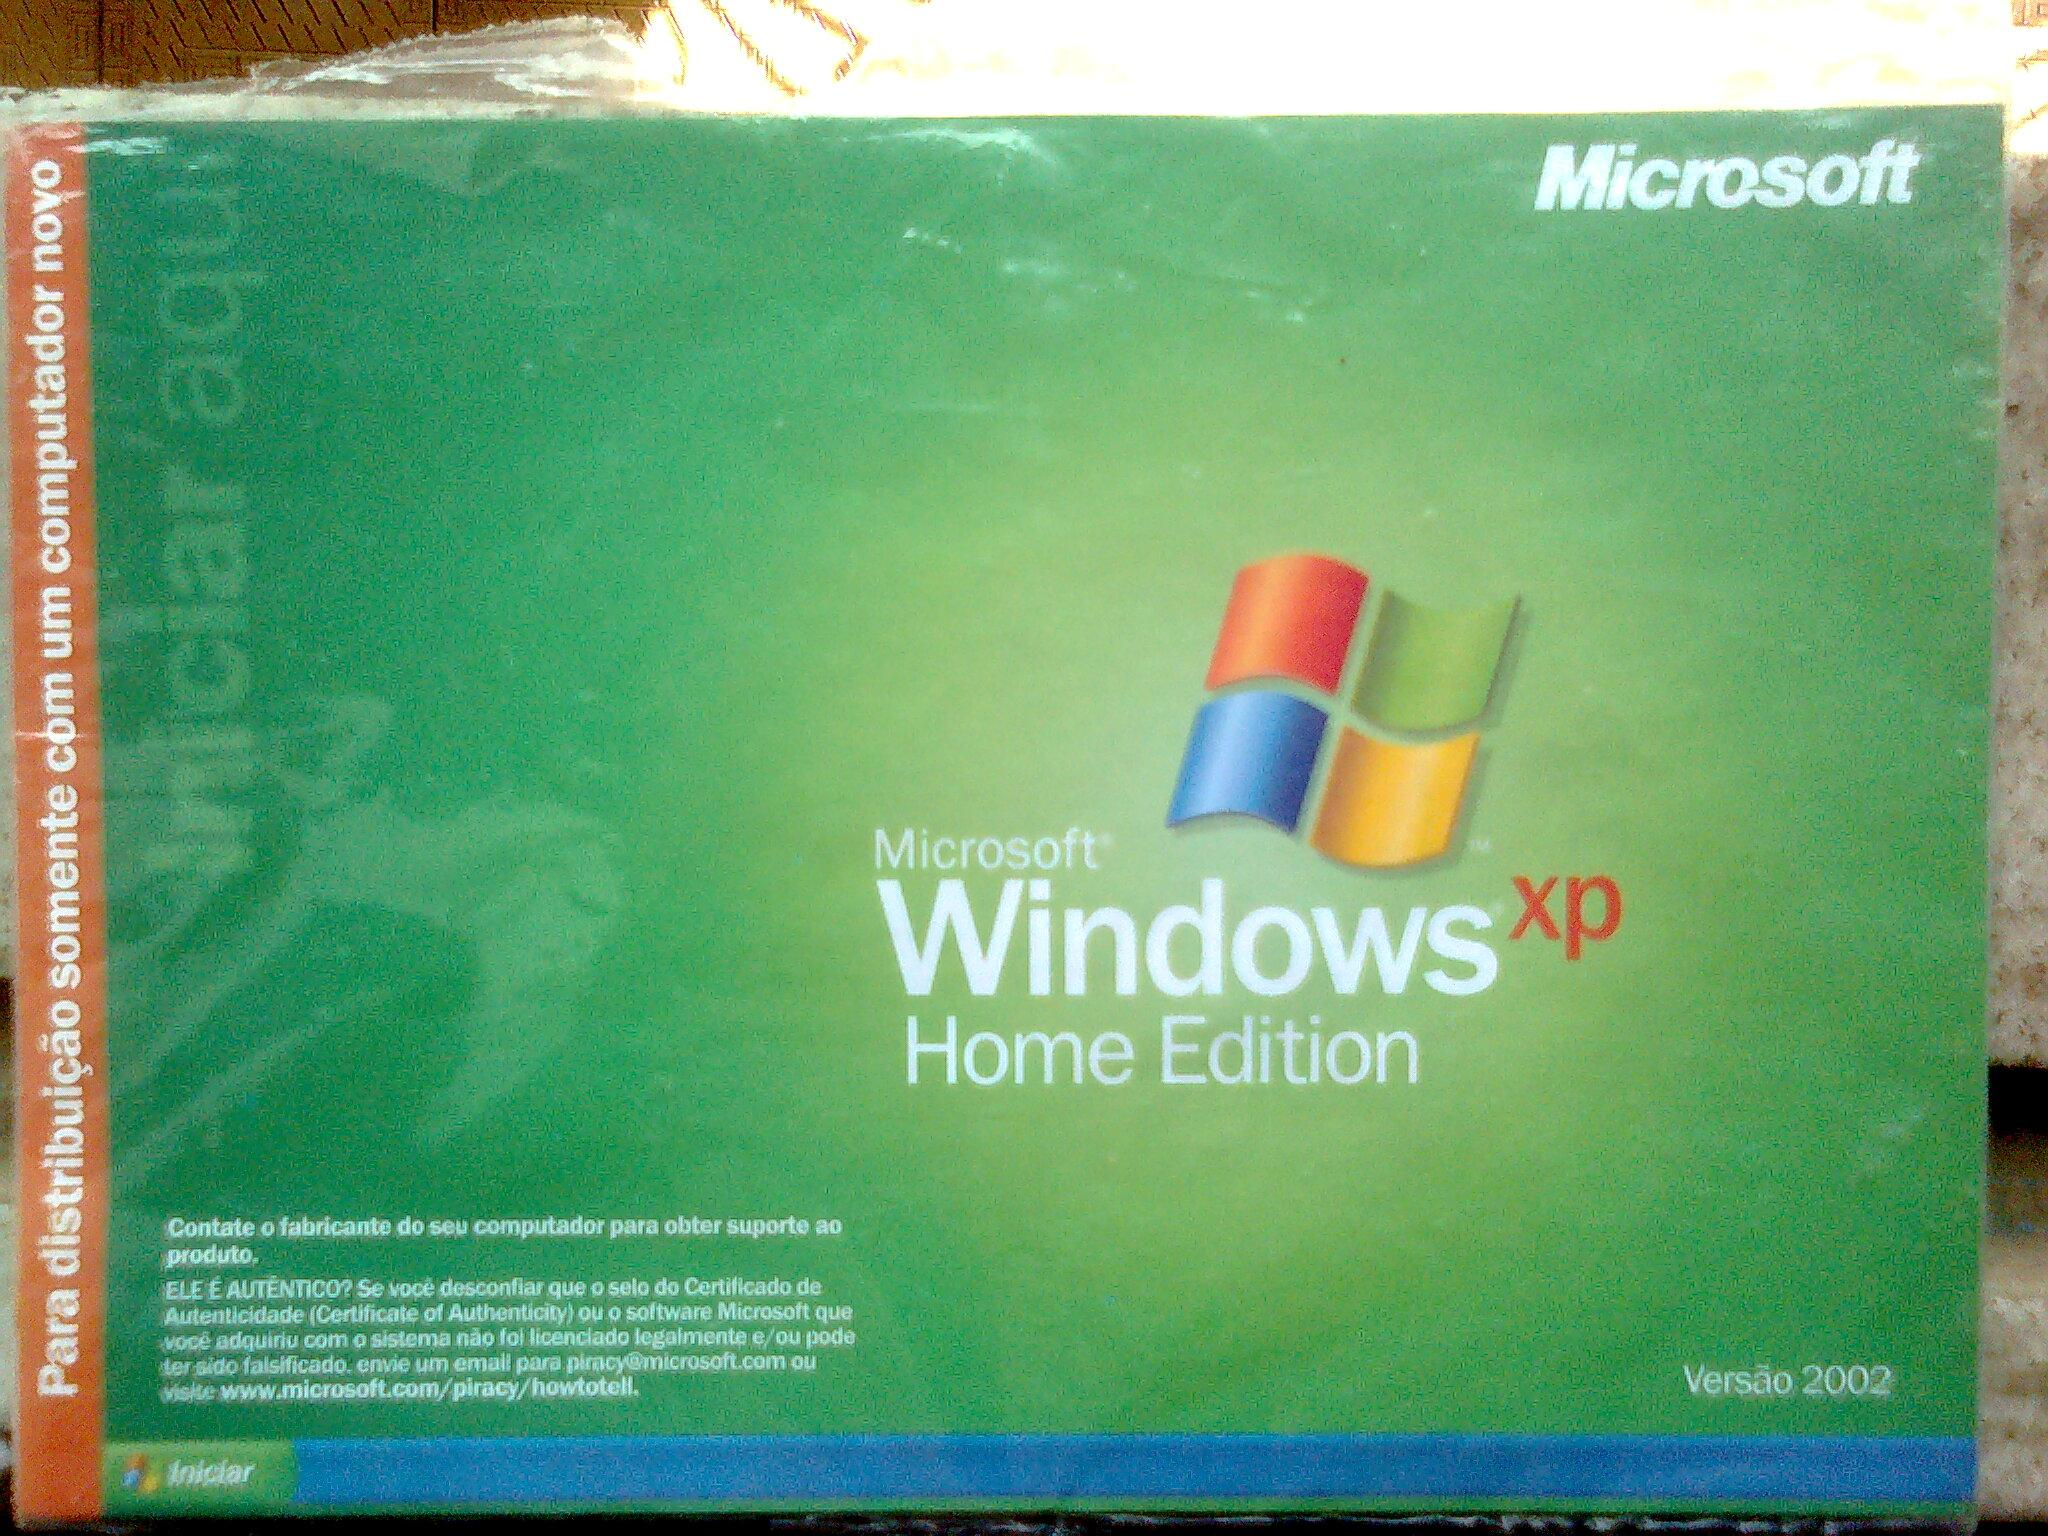 Windows XP Home Edition Start Here Manual (pt-BR) .